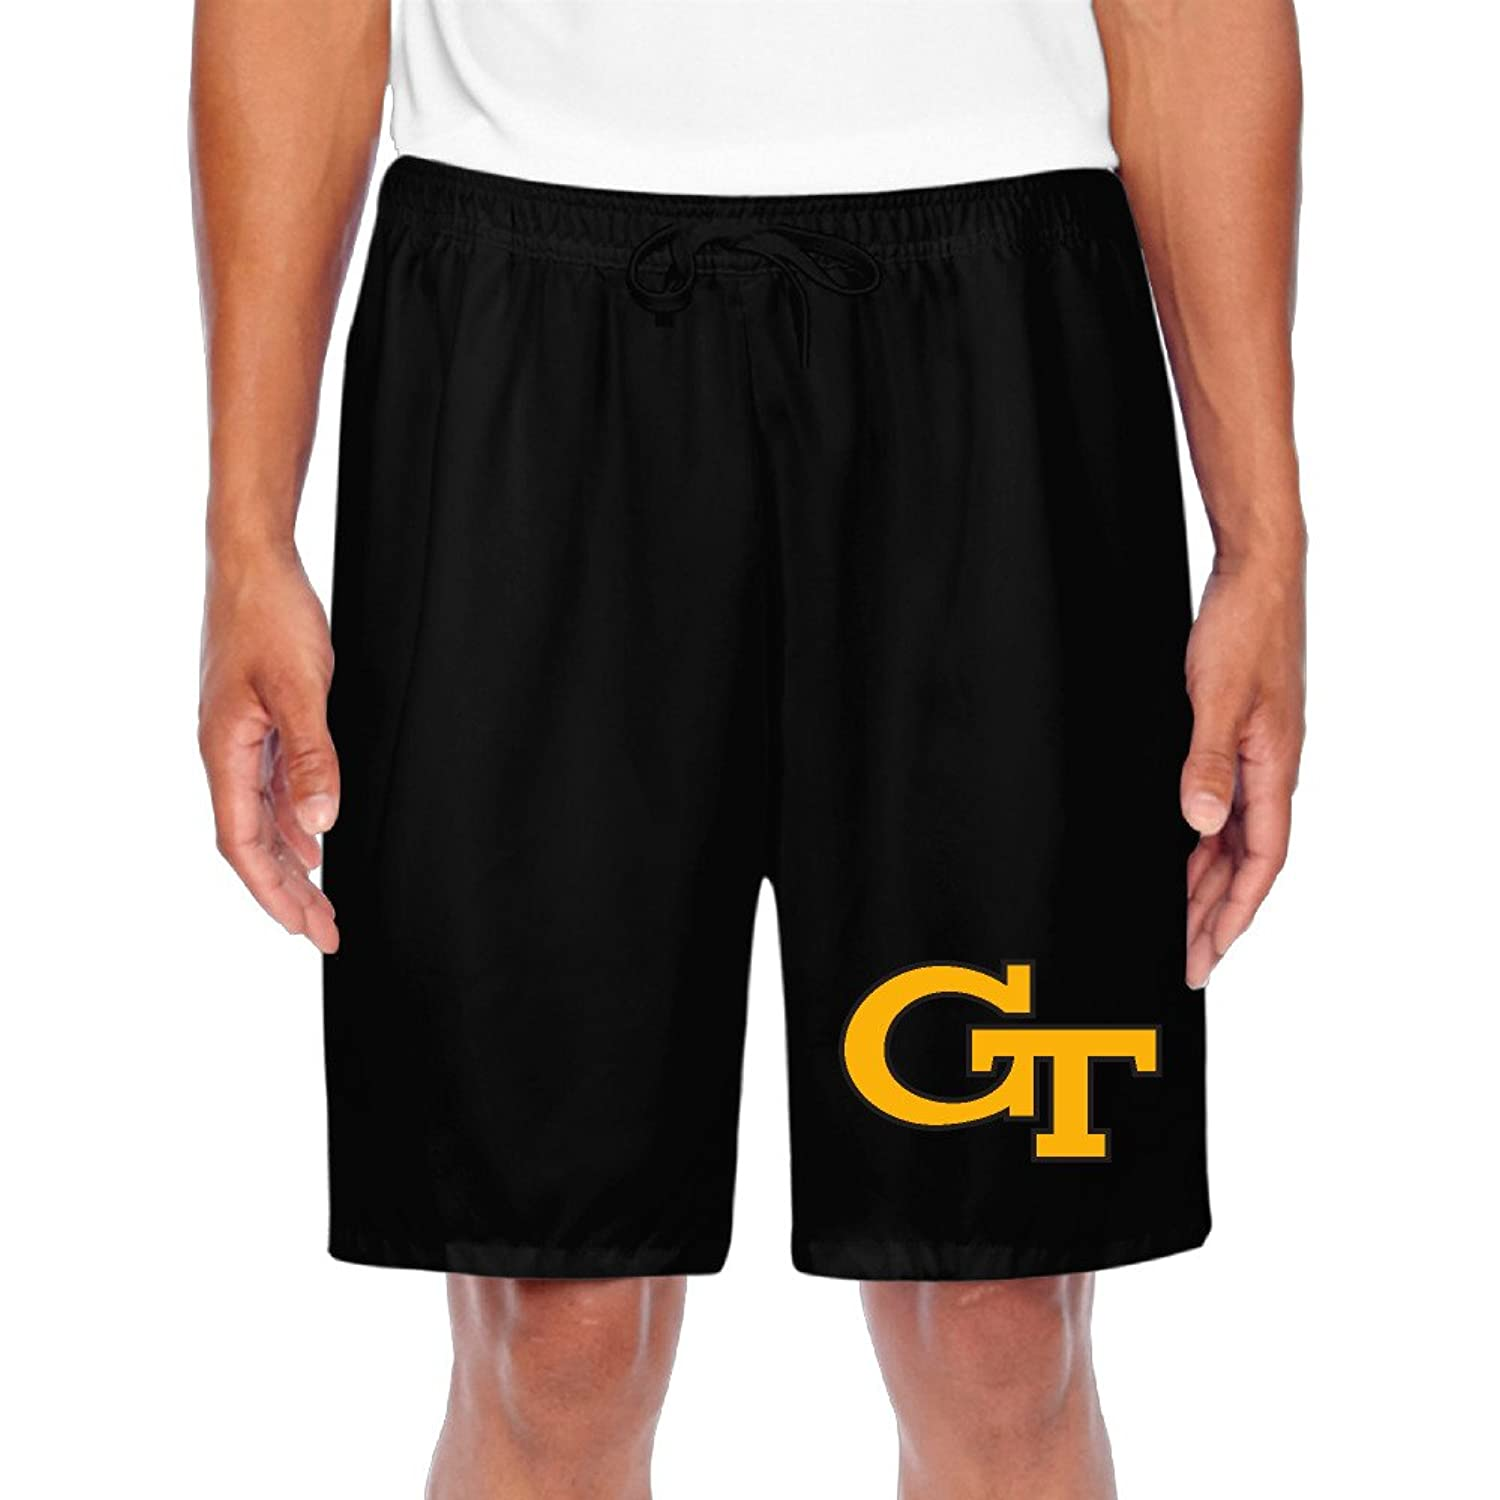 BOOMY Men's Georgia Tech Shorts Workout Pants Black